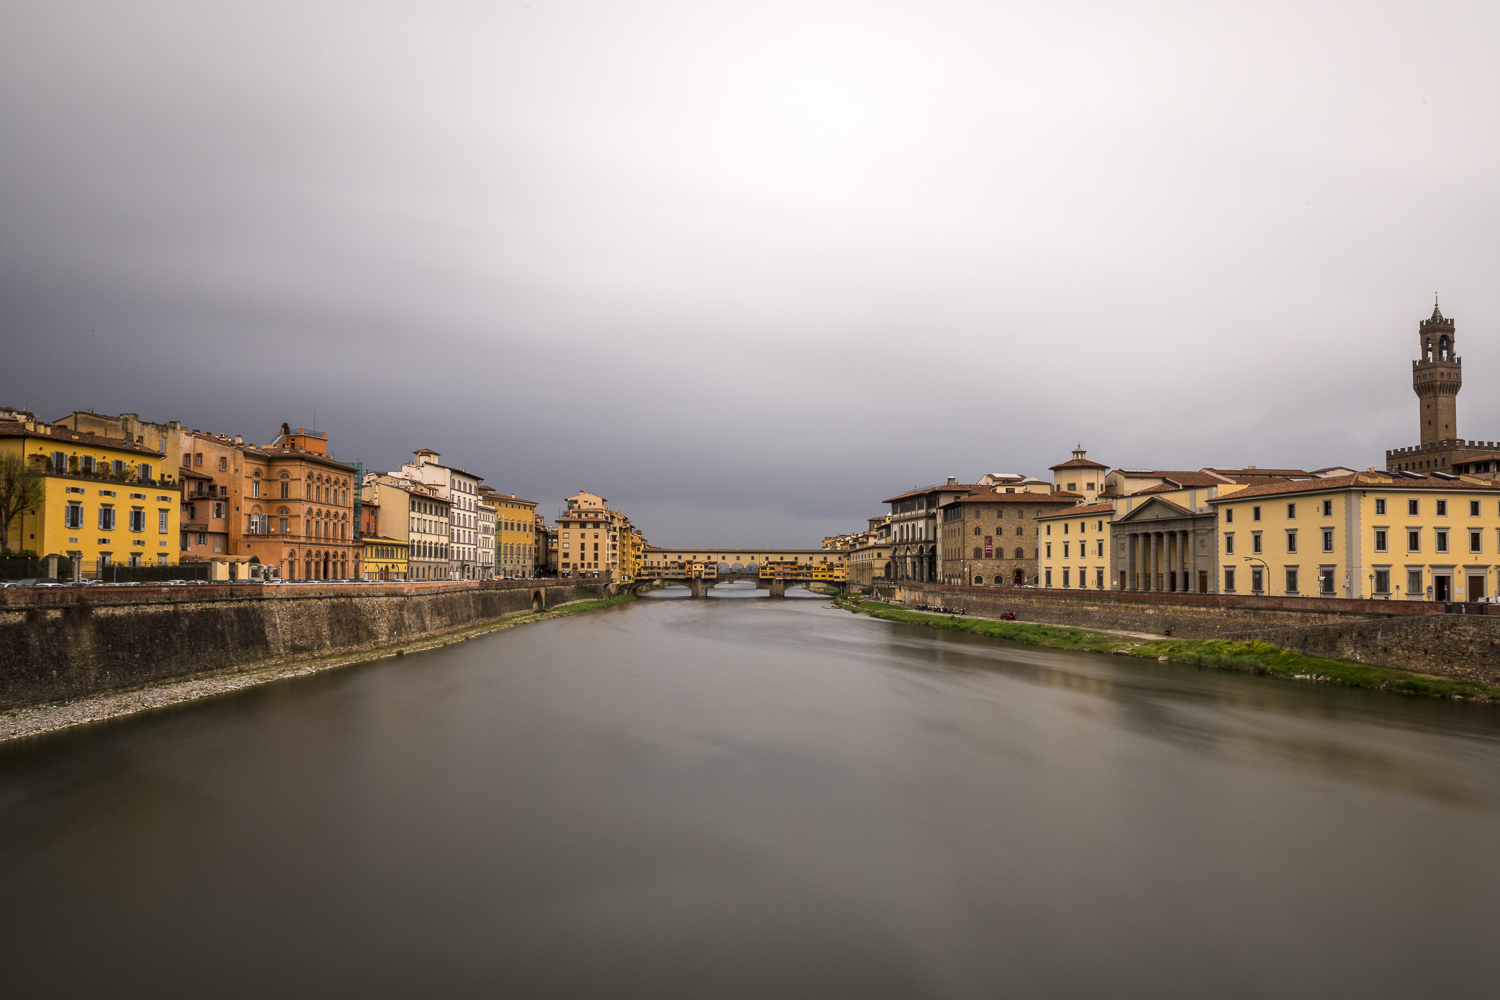 The Arno River and Ponte Vecchio during a moody sunset.